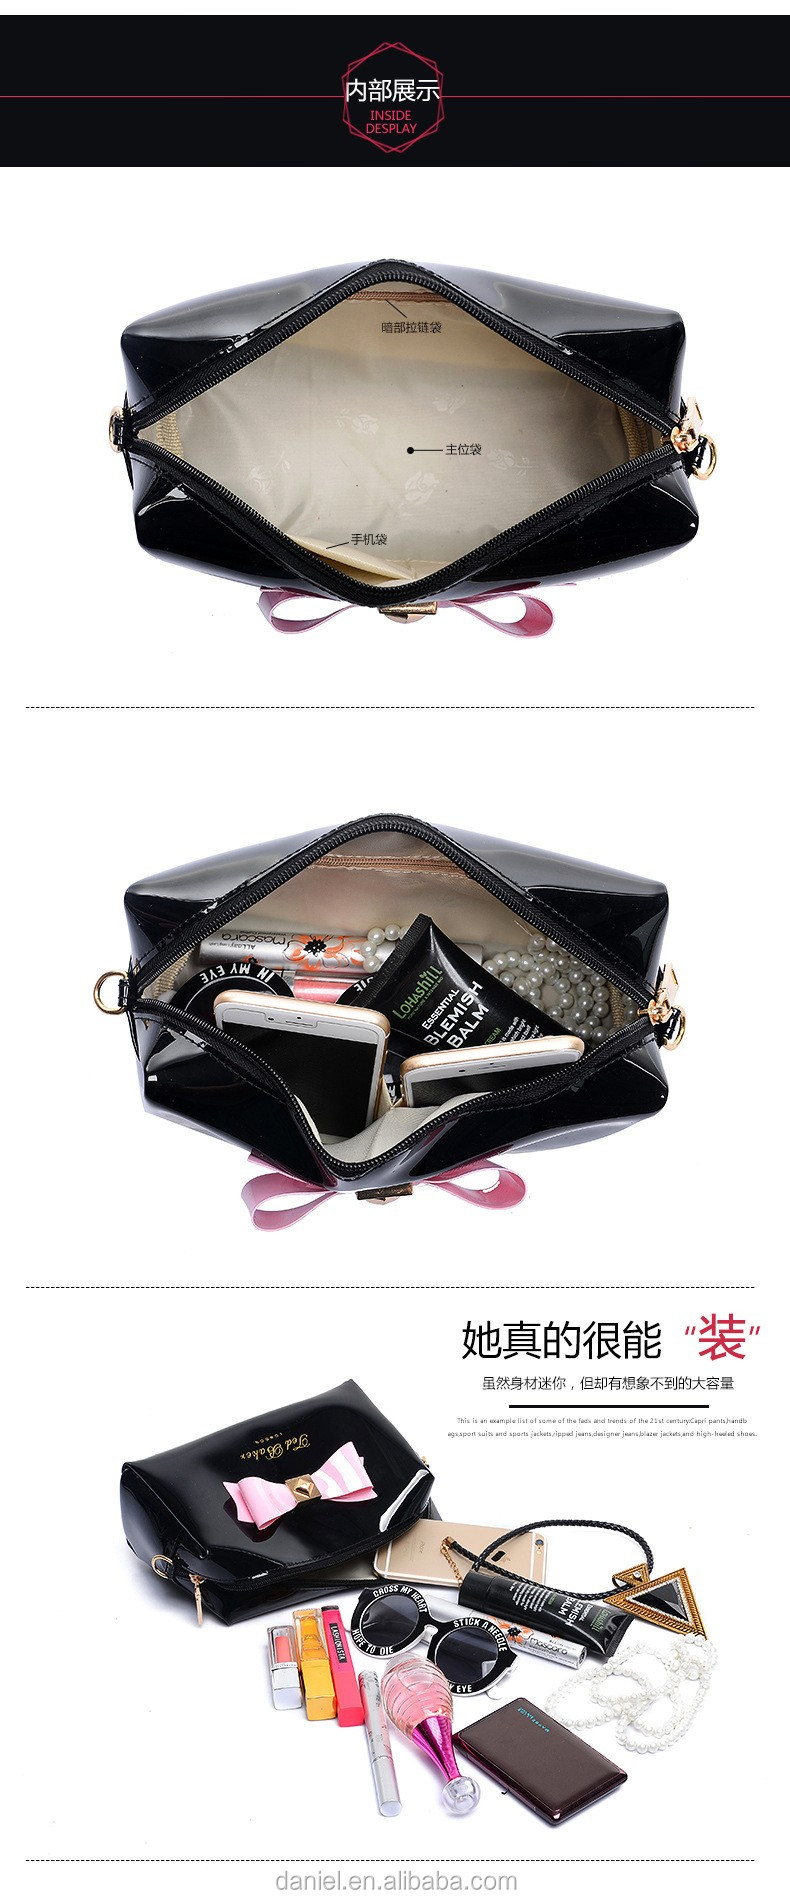 Black PVC big bowknot make-up bags&cases for lady